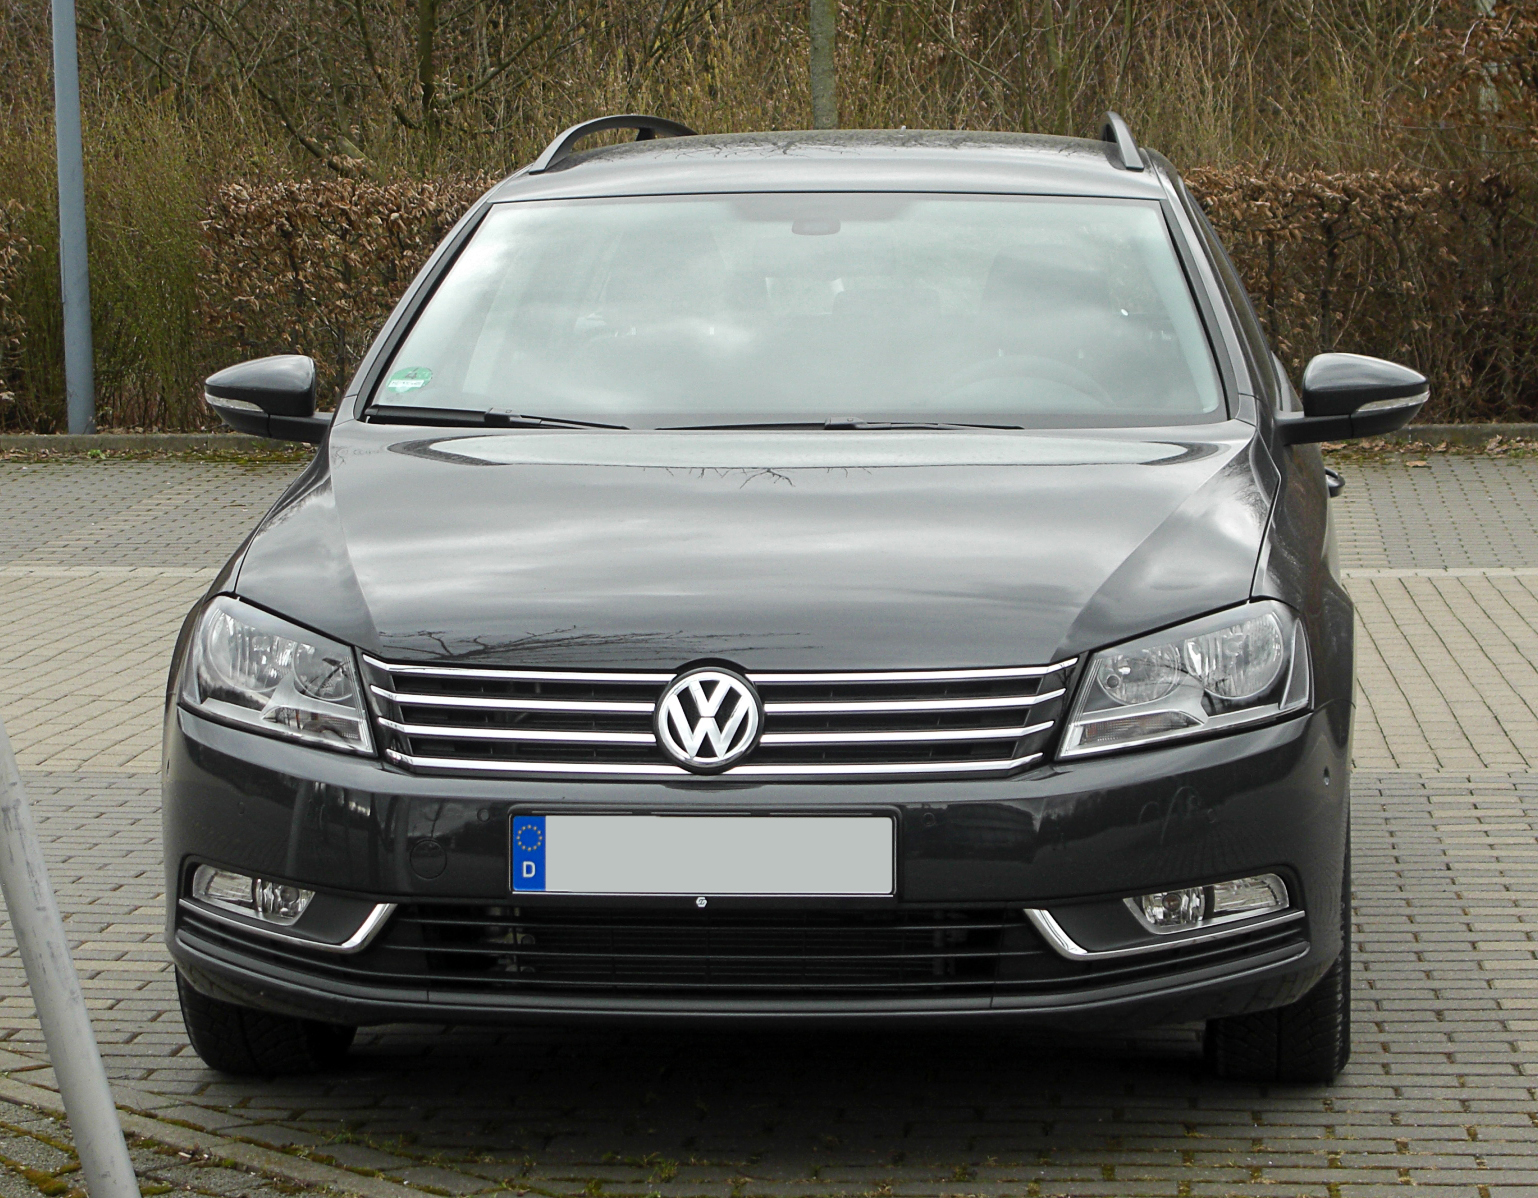 volkswagen passat variant 2 0 tdi trendline photos and comments. Black Bedroom Furniture Sets. Home Design Ideas